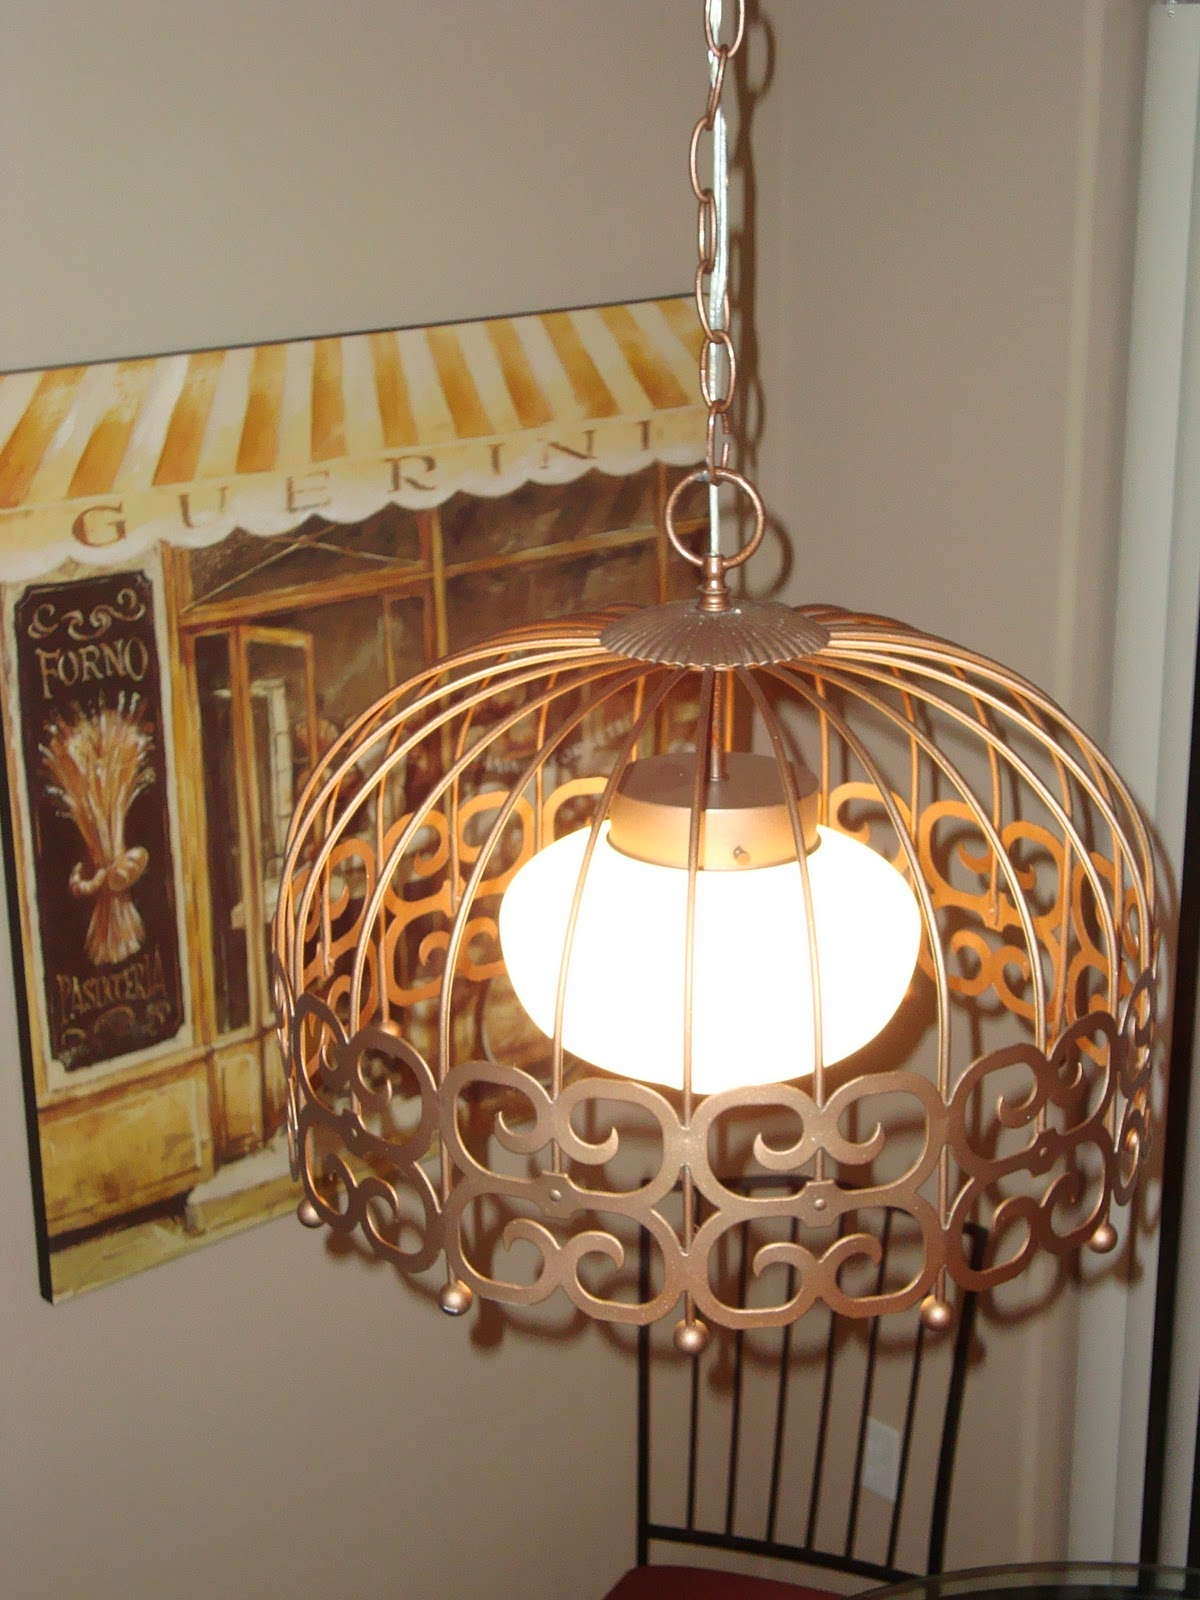 This Fixture Only Cost Us 40 Total Including The Light 5 Spray Primer And Metallic Paint 20 Chain Kit Glass